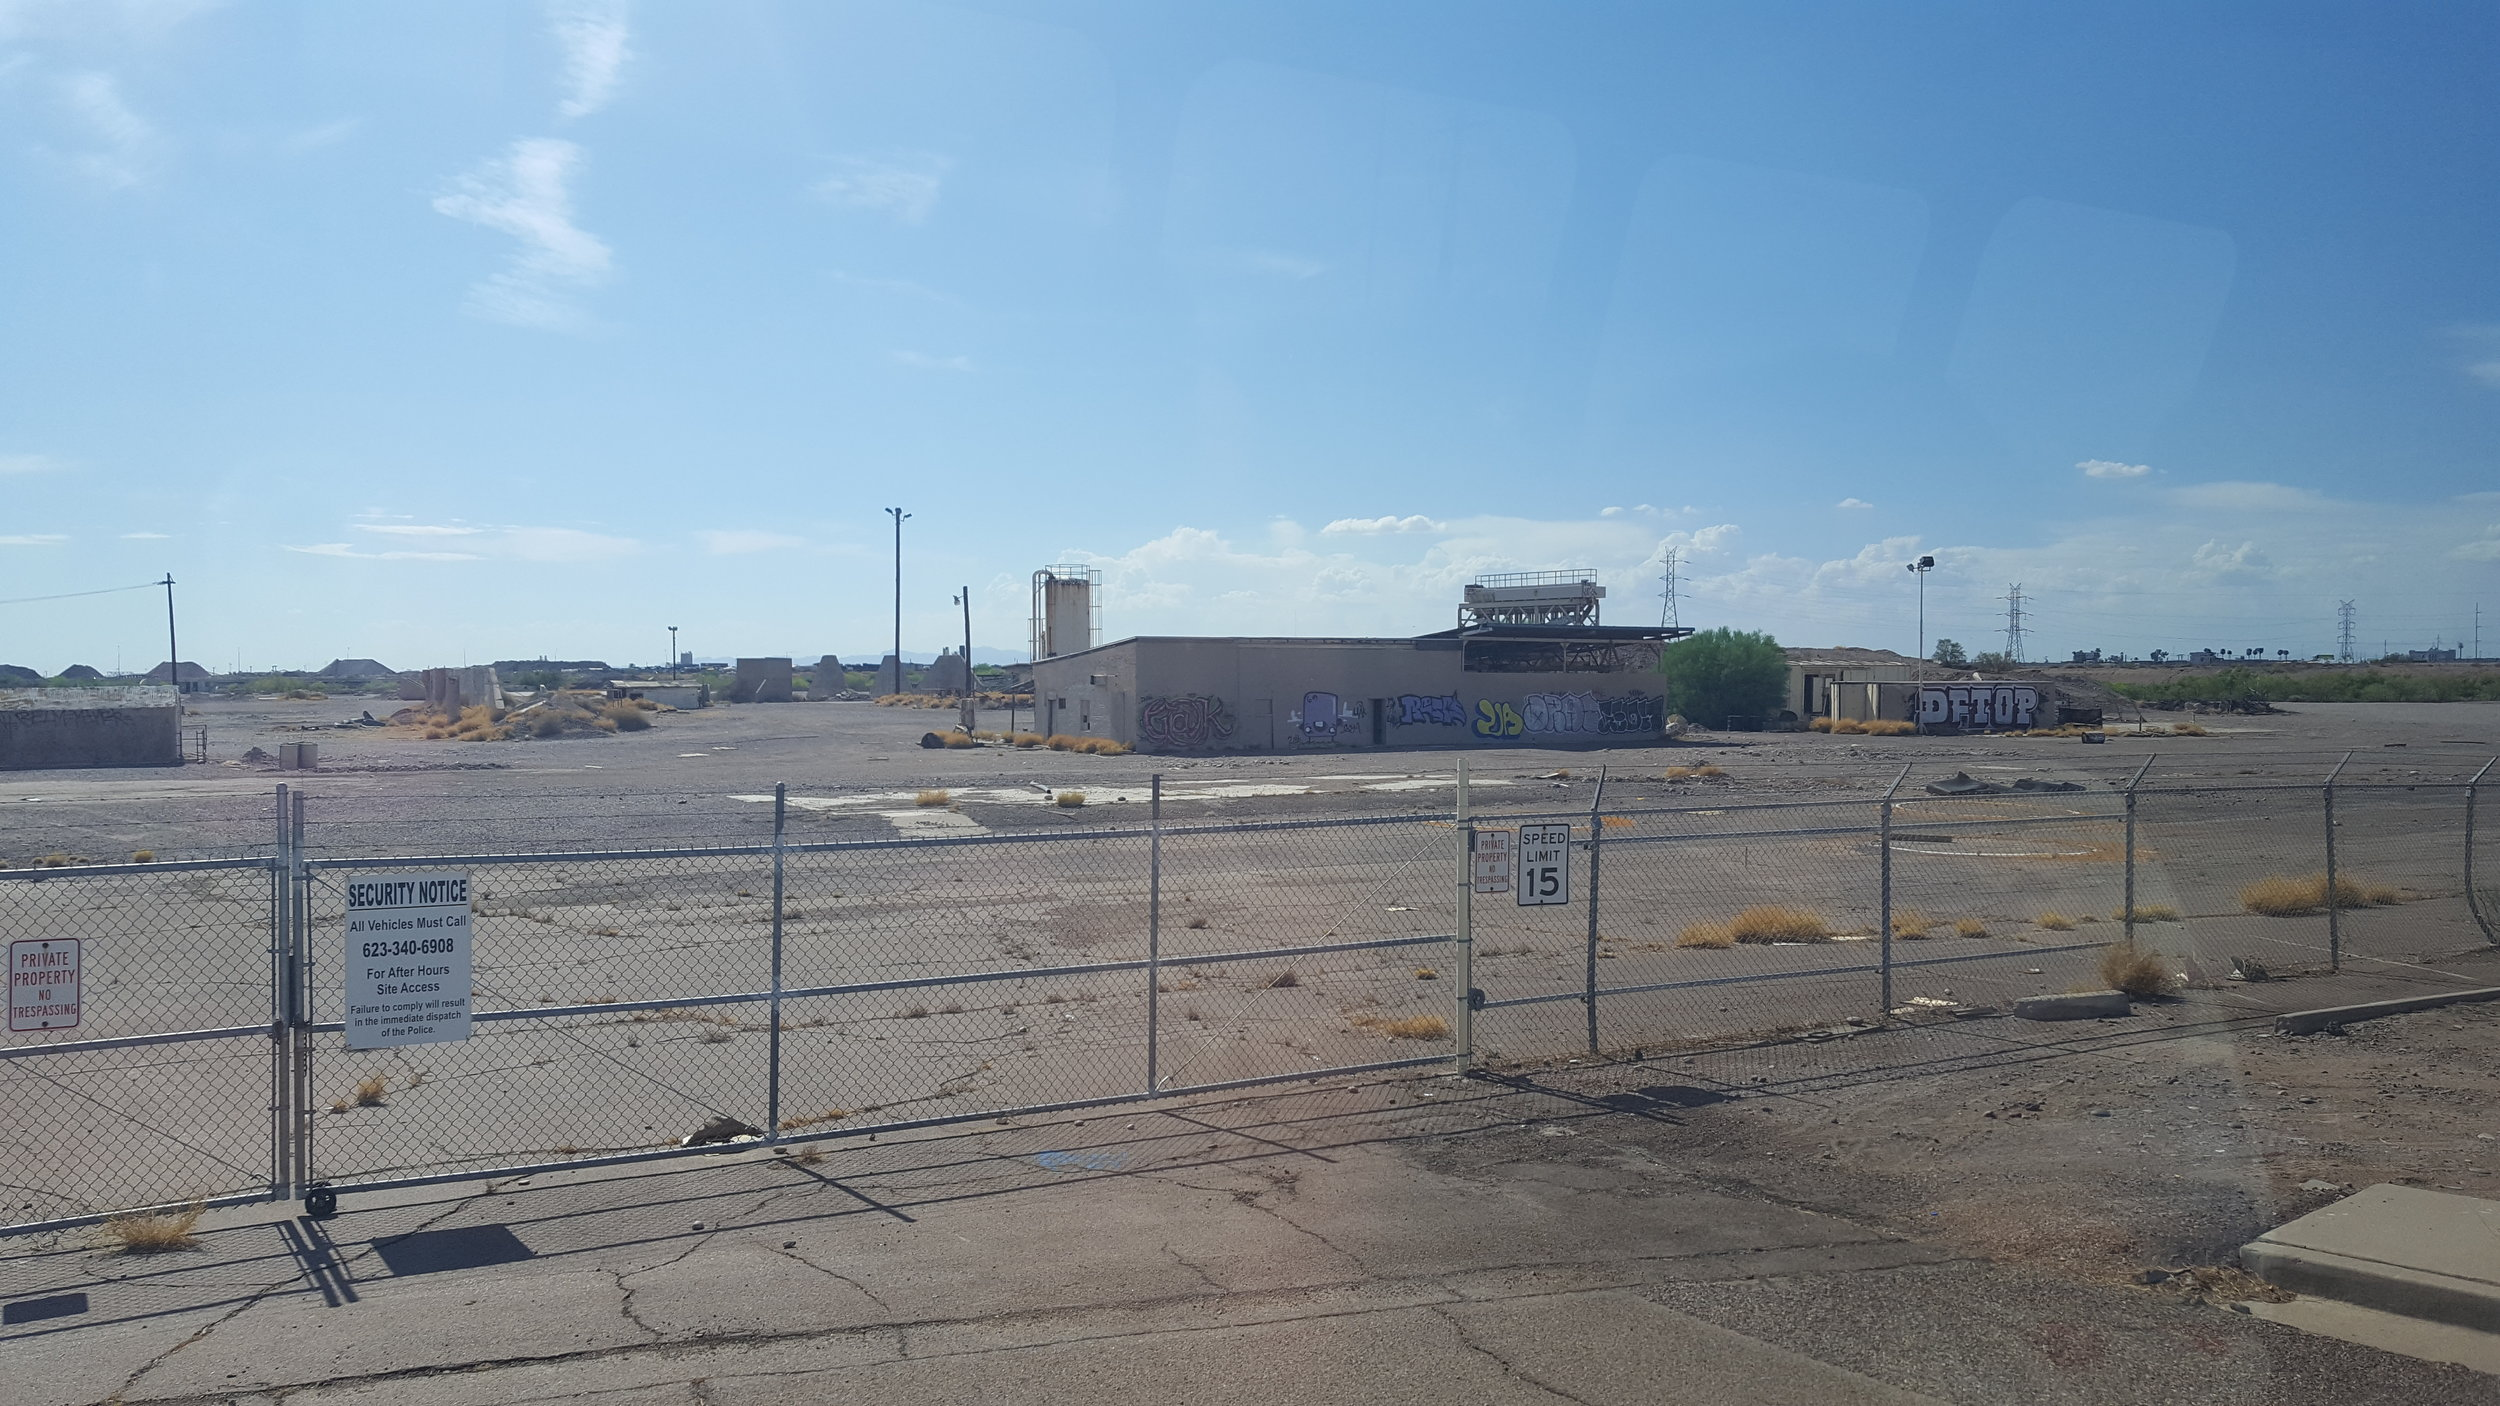 Contaminated brownfields like this one in a low-income, minority neighborhood in South Phoenix would benefit from federal EJ and brownfields programs, which are proposed for elimination in the Trump budget (Photo: M. Zimmerman)